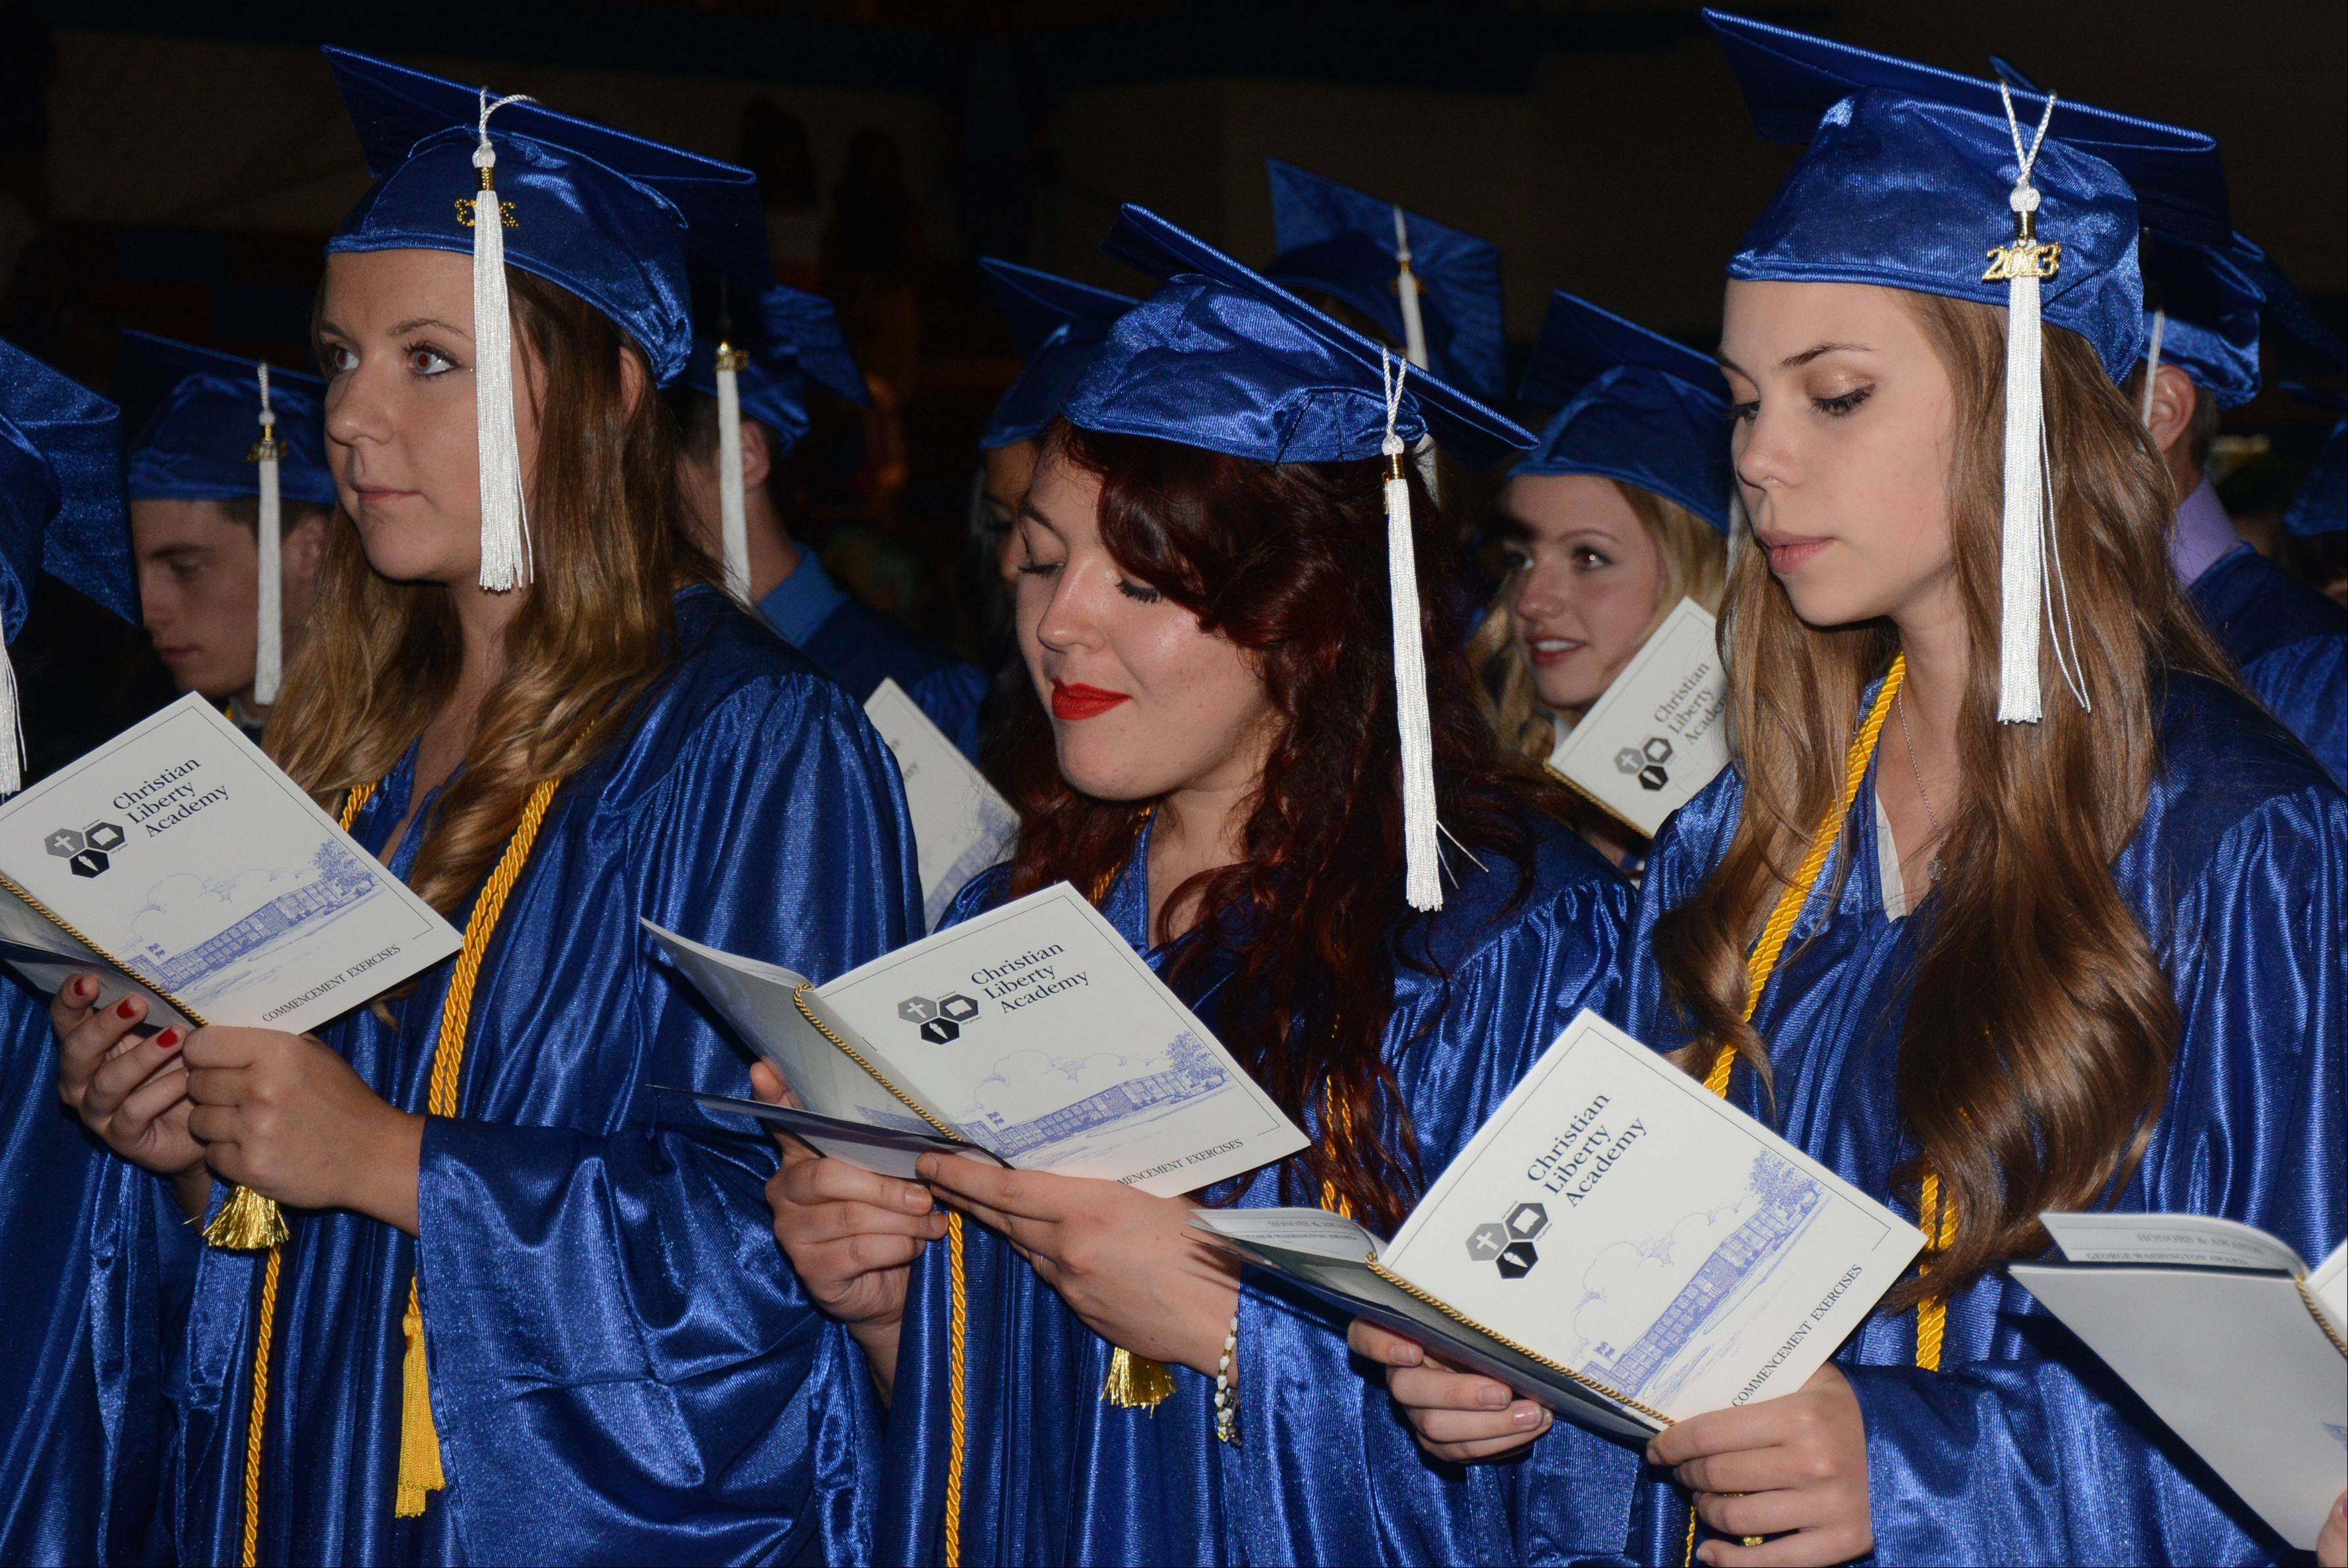 Images from the Christian Liberty Academy graduation on Sunday, June 9, in Arlington Heights.